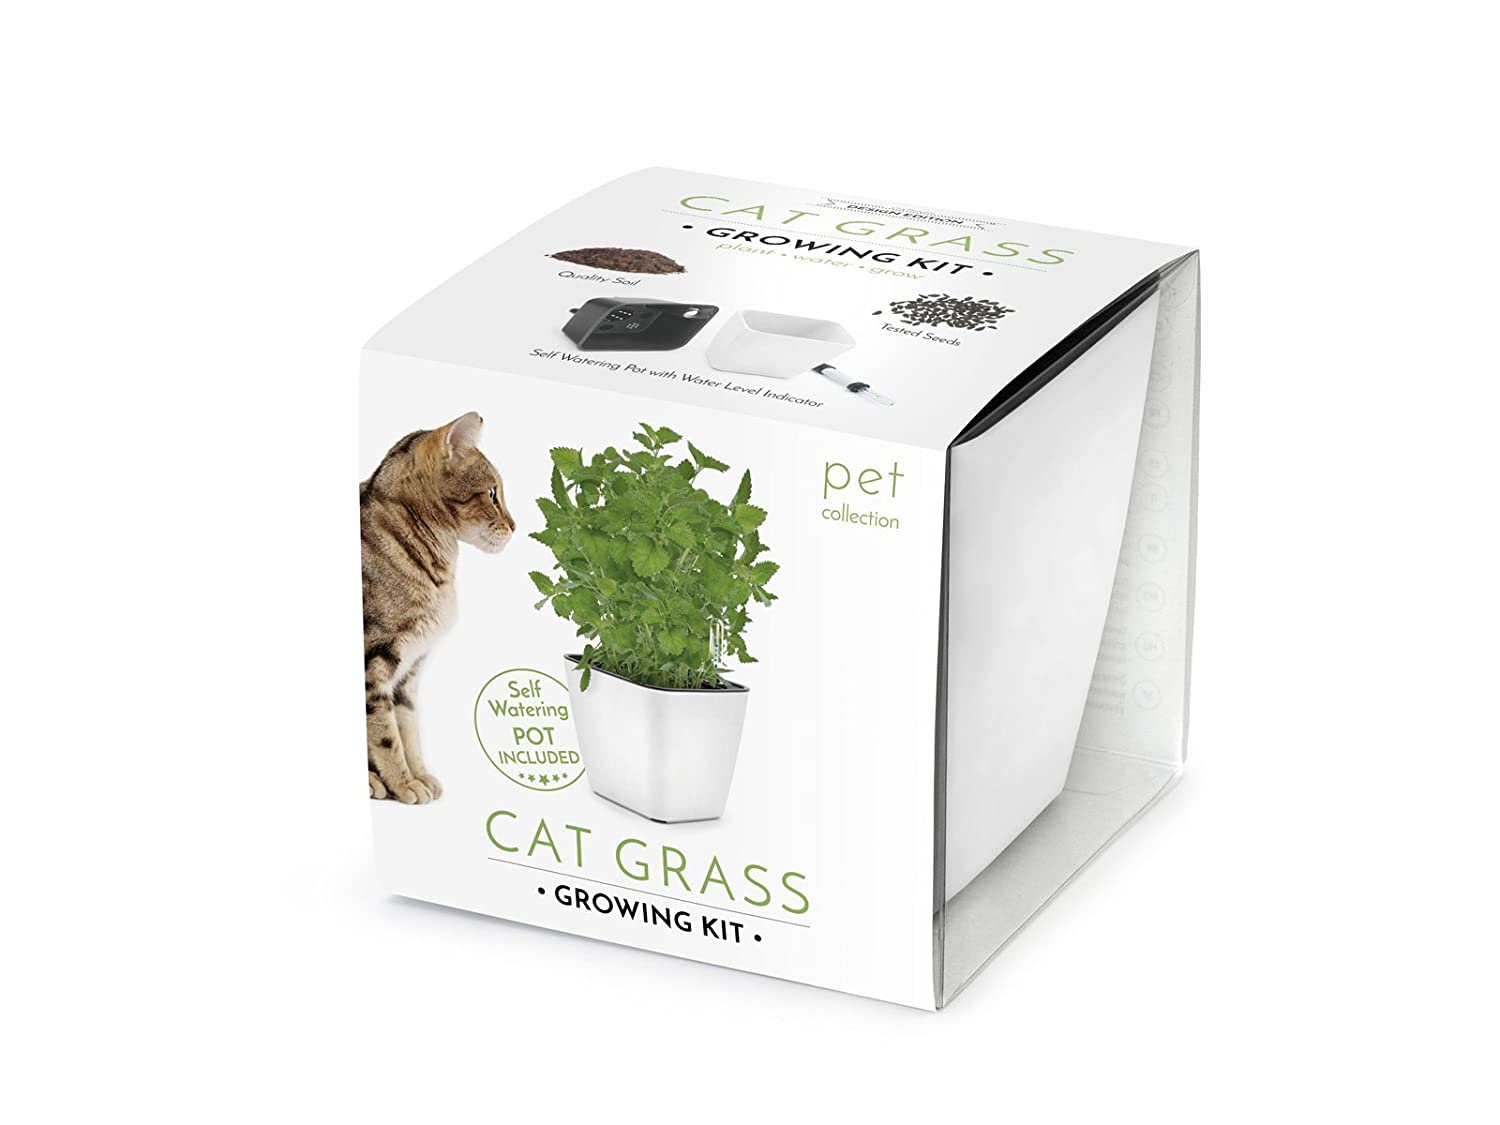 Katzengras-Anbaukit (Cat grass growing kit) Domestico, All-In-One-Set, Set mit Selbstbewässerungstopf, Substrat und Samen (Weiß) VISO TRADE